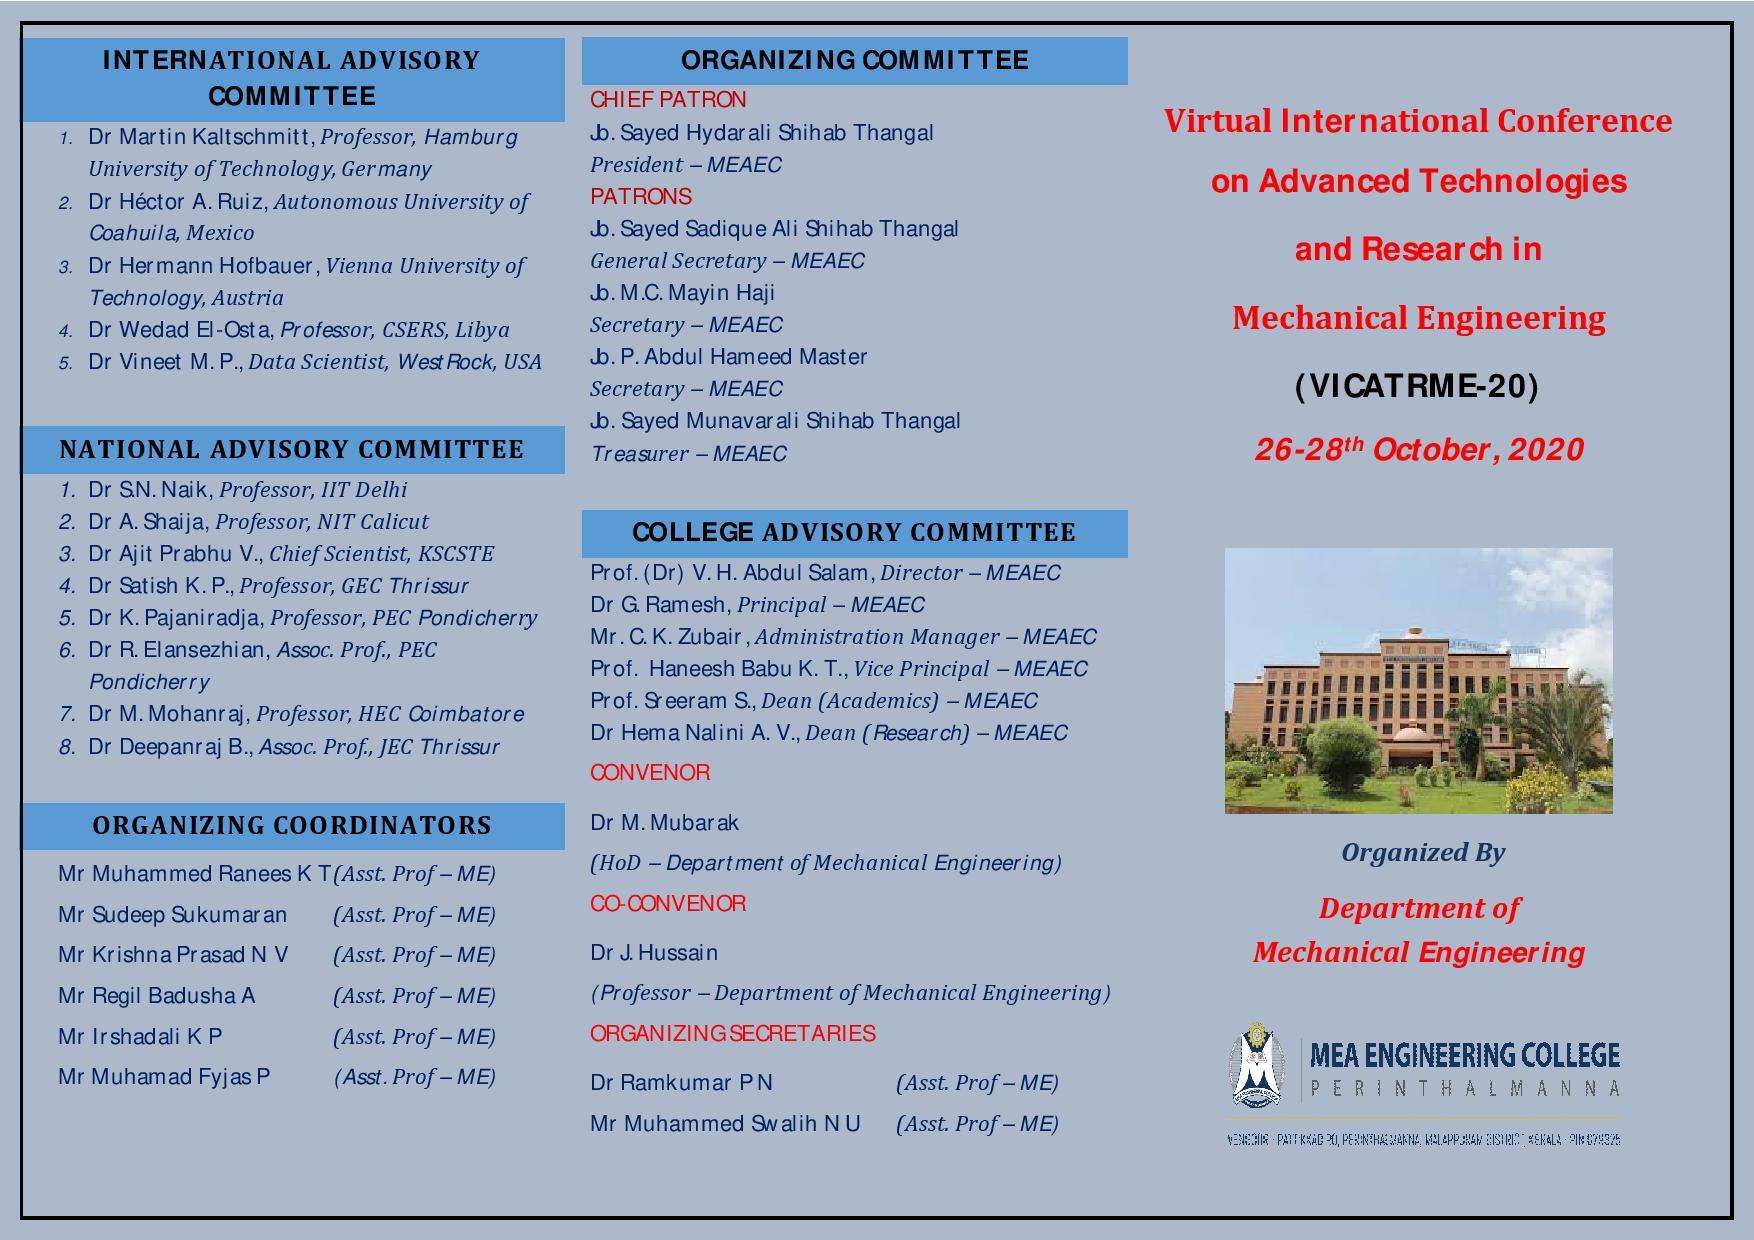 Virtual International Conference on Advanced Technologies and Research in Mechanical Engineering VICATRME 20